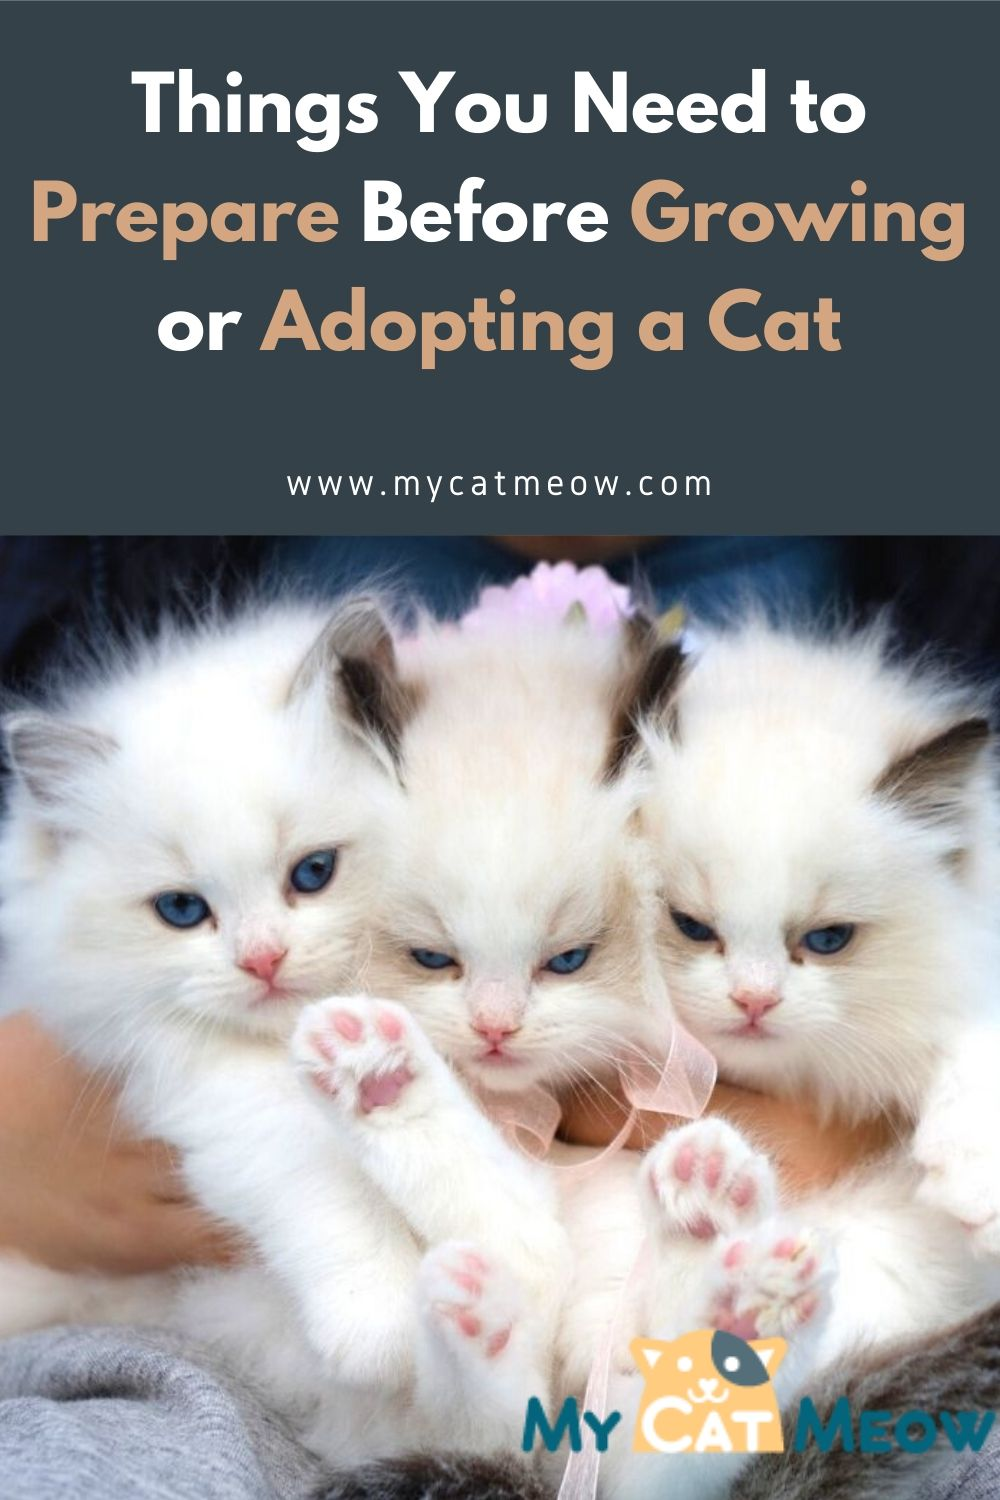 Things You Need to Prepare Before Growing or Adopting a Cat